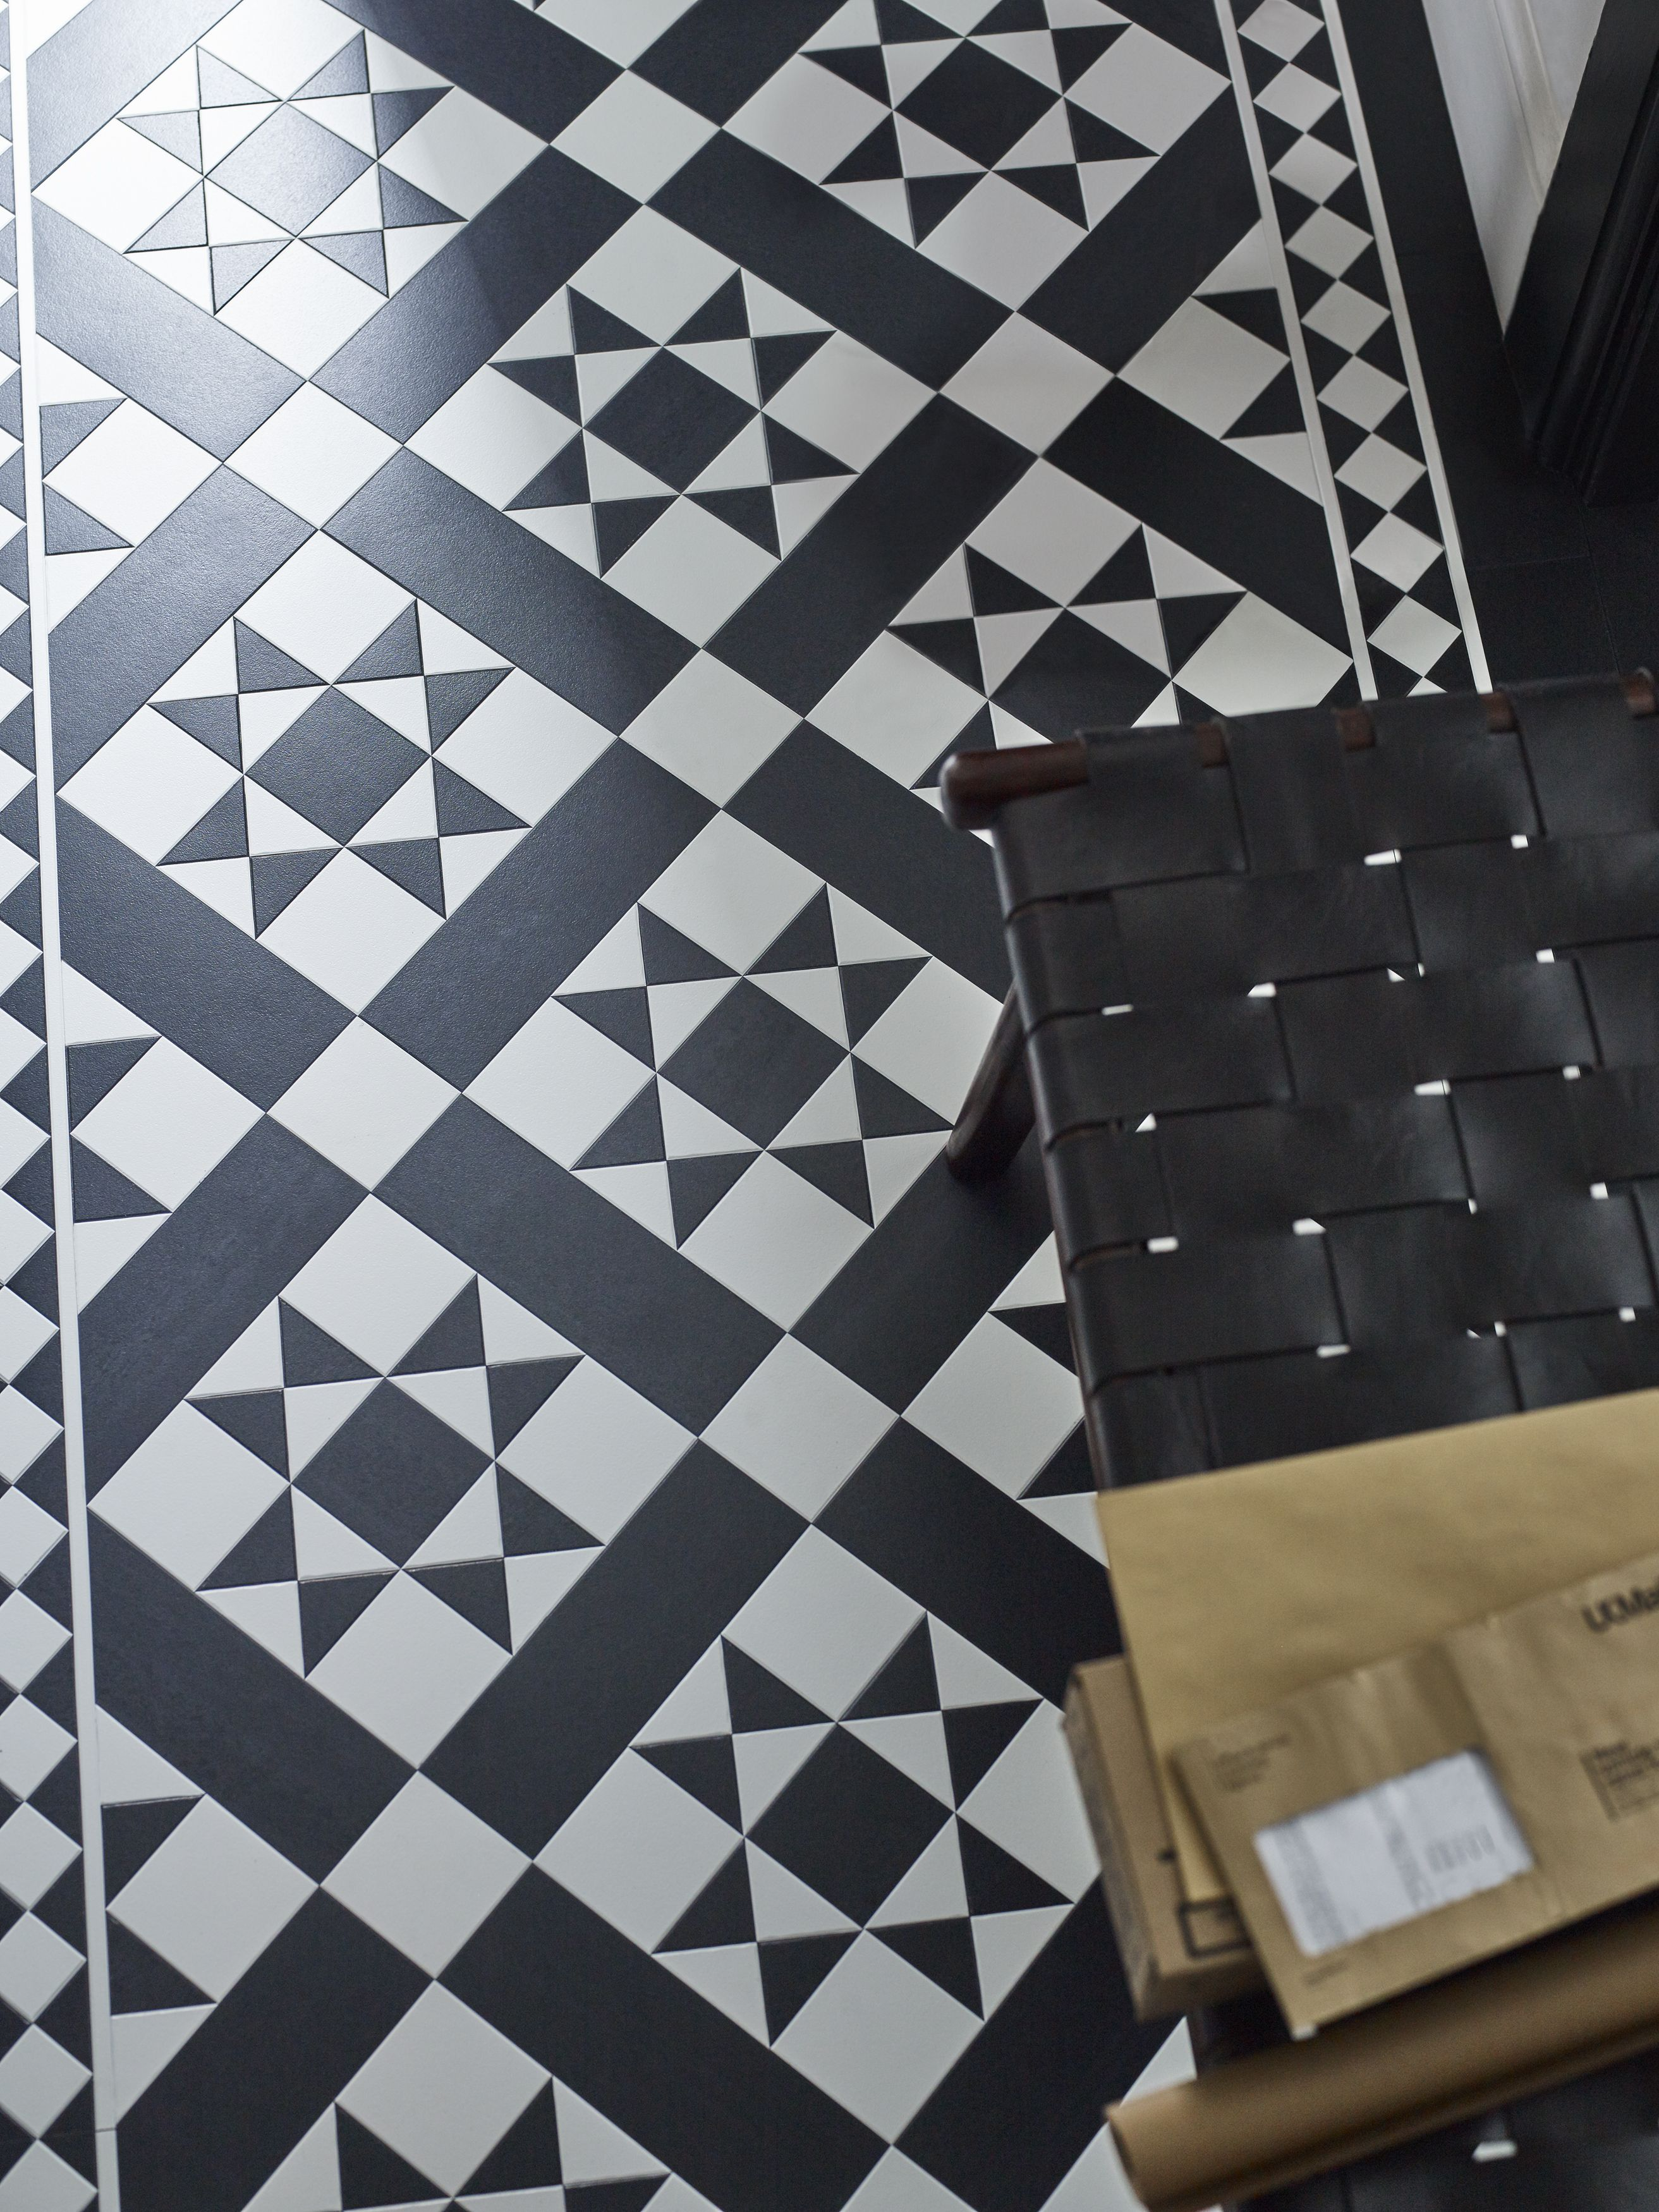 Corona mono from amtico decor makes a bold statement interiors an unrivalled range of design led inspirational and innovative luxury vinyl flooring stunning flooring designed innovated and manufactured in britain by dailygadgetfo Image collections